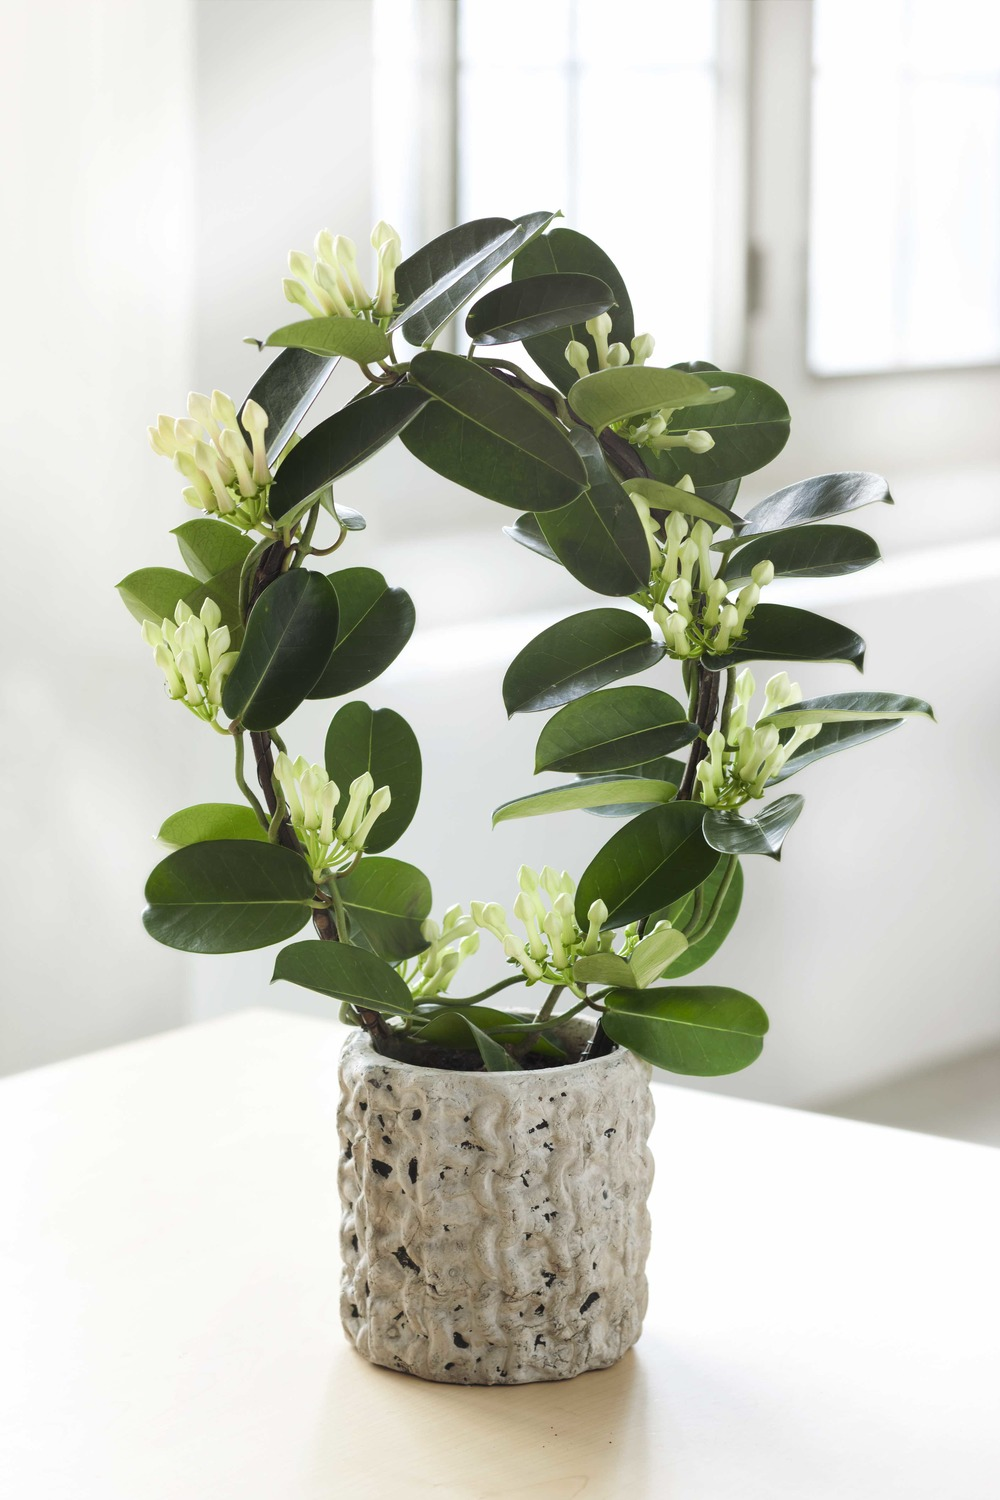 stephanotis in vaso.jpg